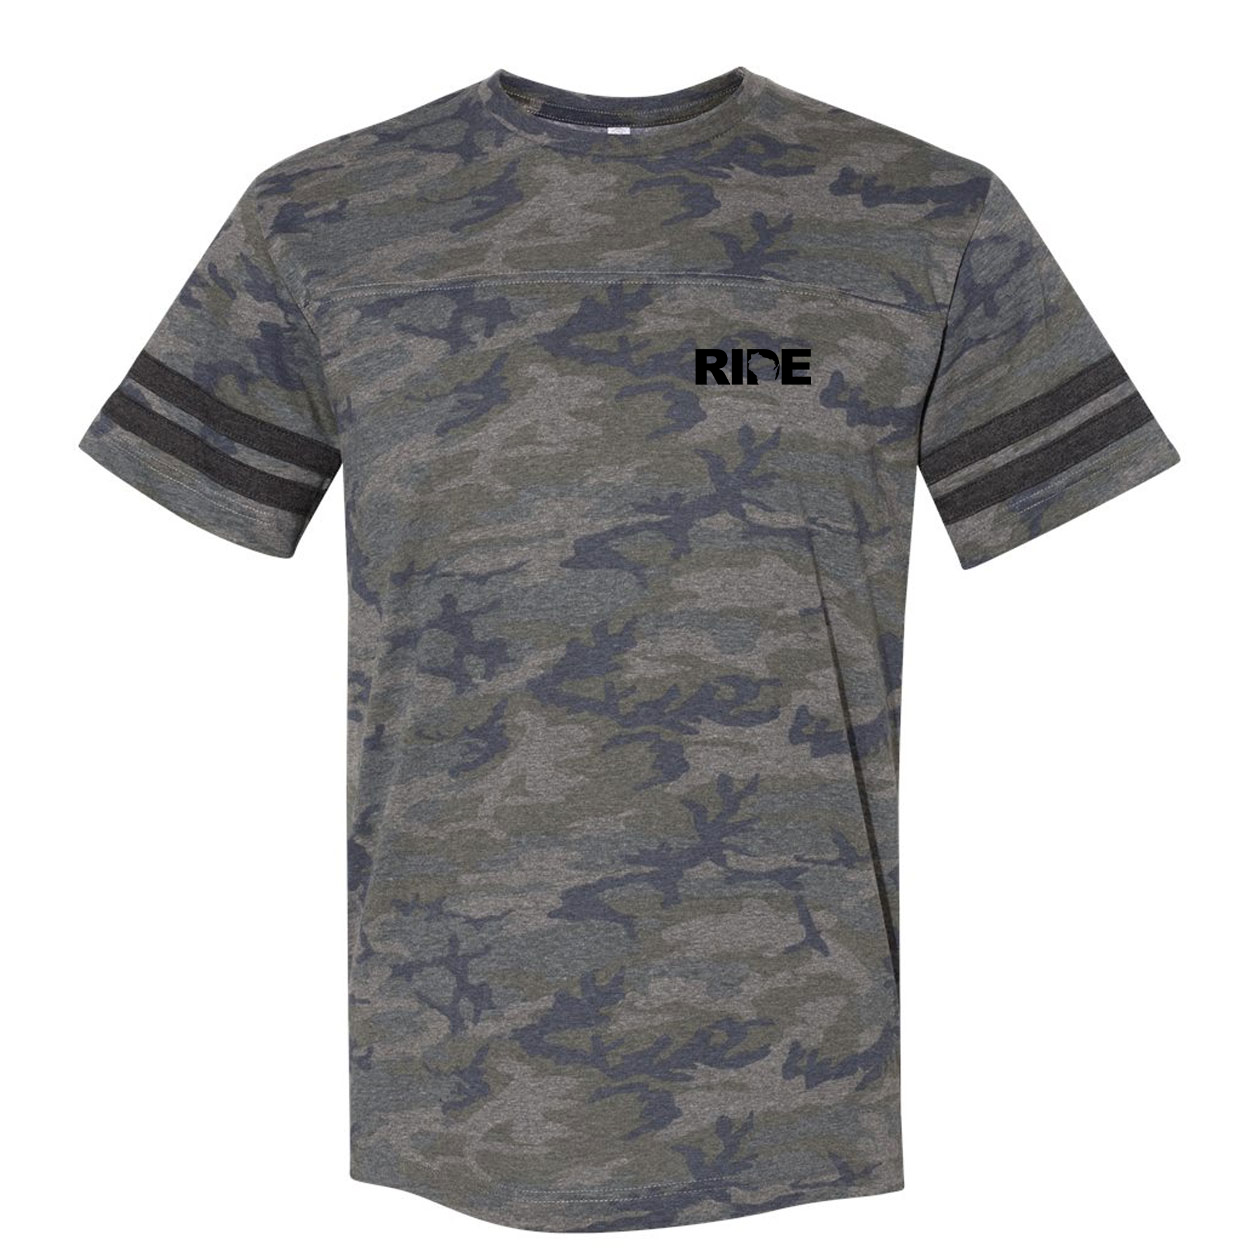 Ride Wisconsin Night Out Unisex Premium LAT Jersey T-Shirt Vintage Camo/Vintage Stripes (Black Logo)